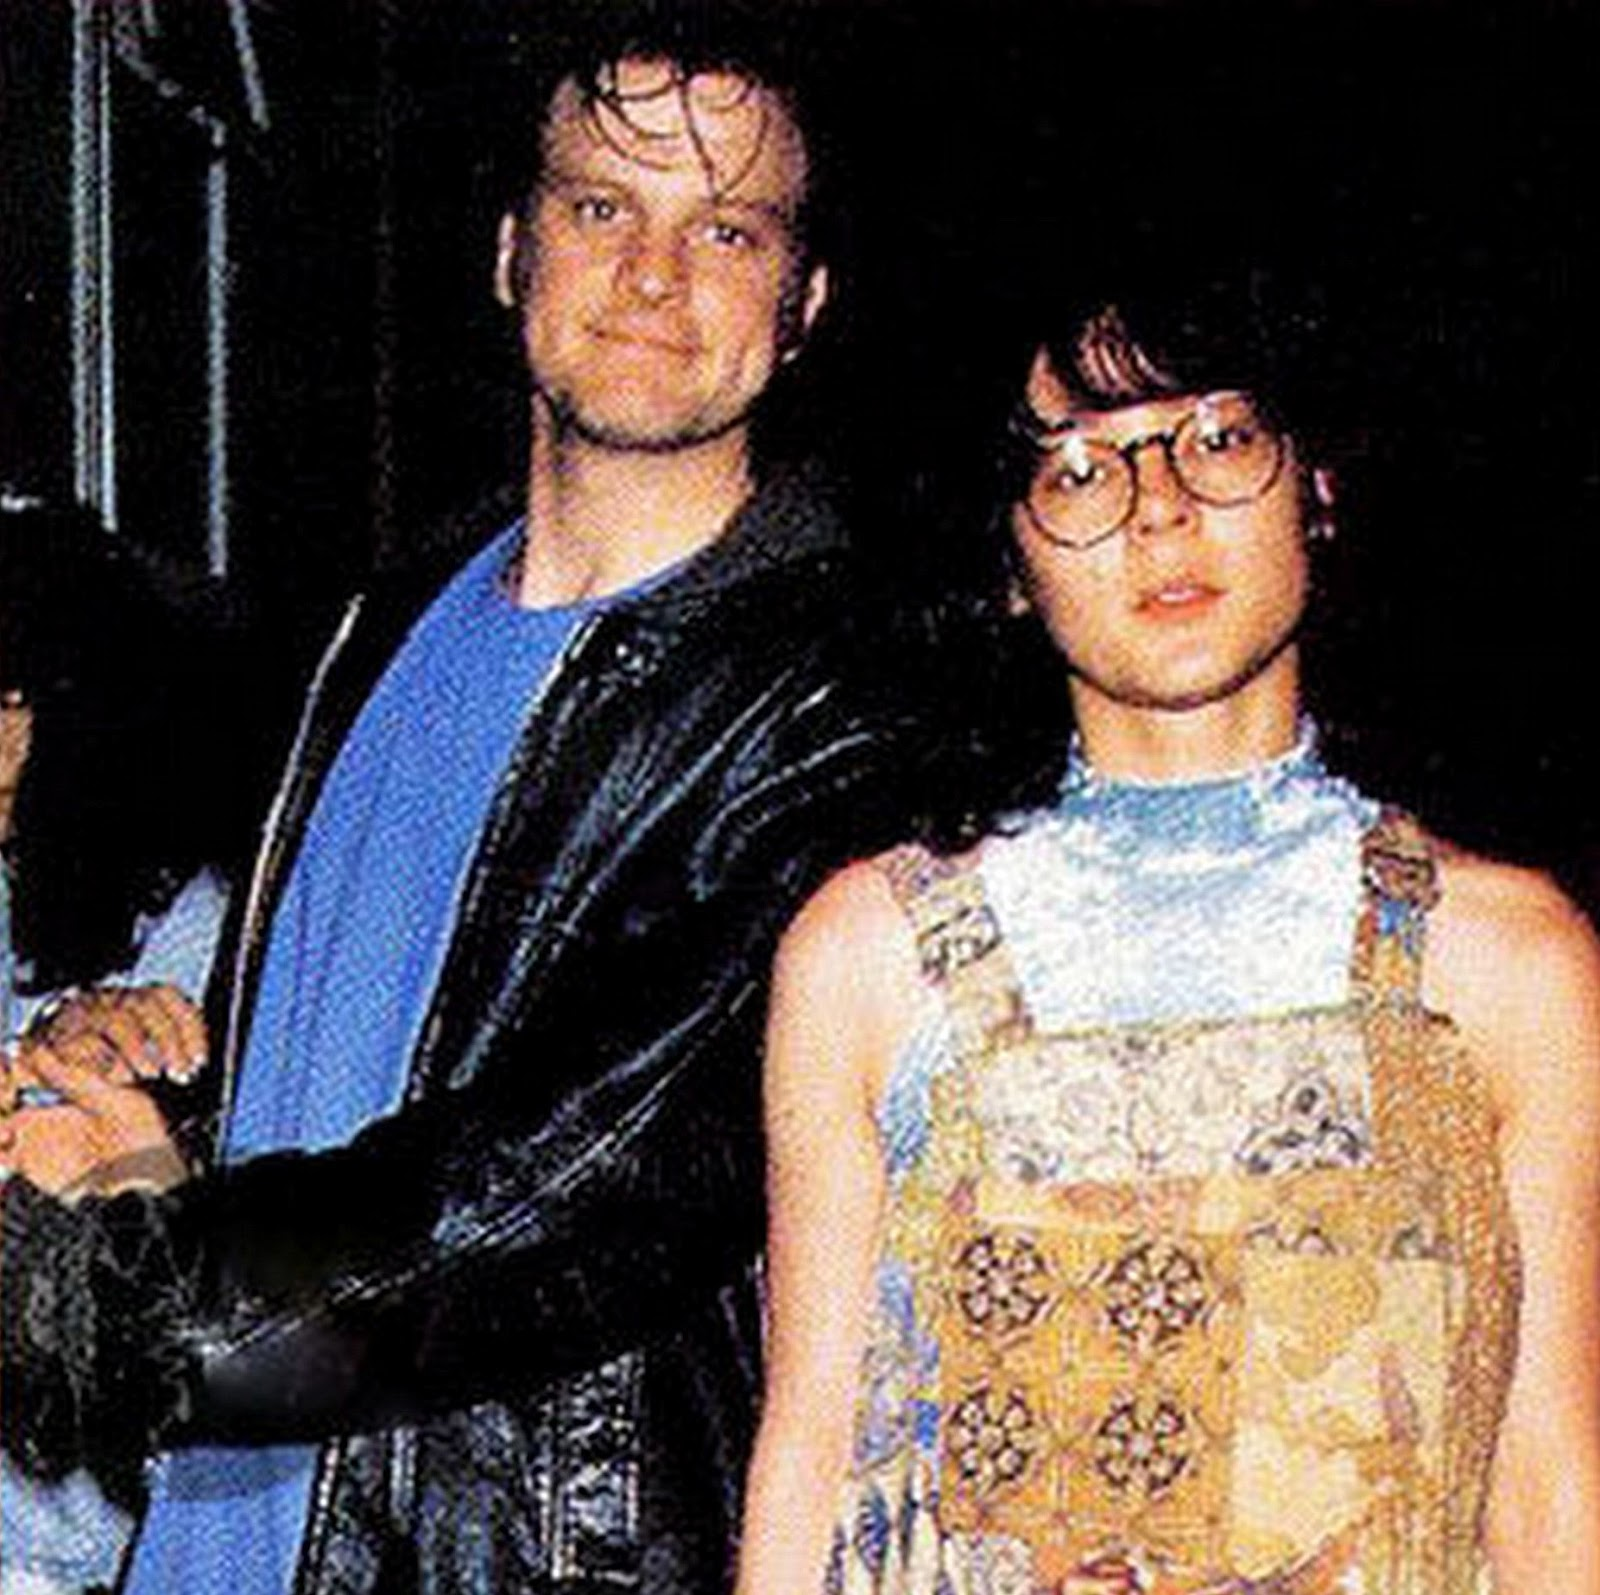 Colin Firth Meg Tilly Son Meg Tilly And Colin Firth Son